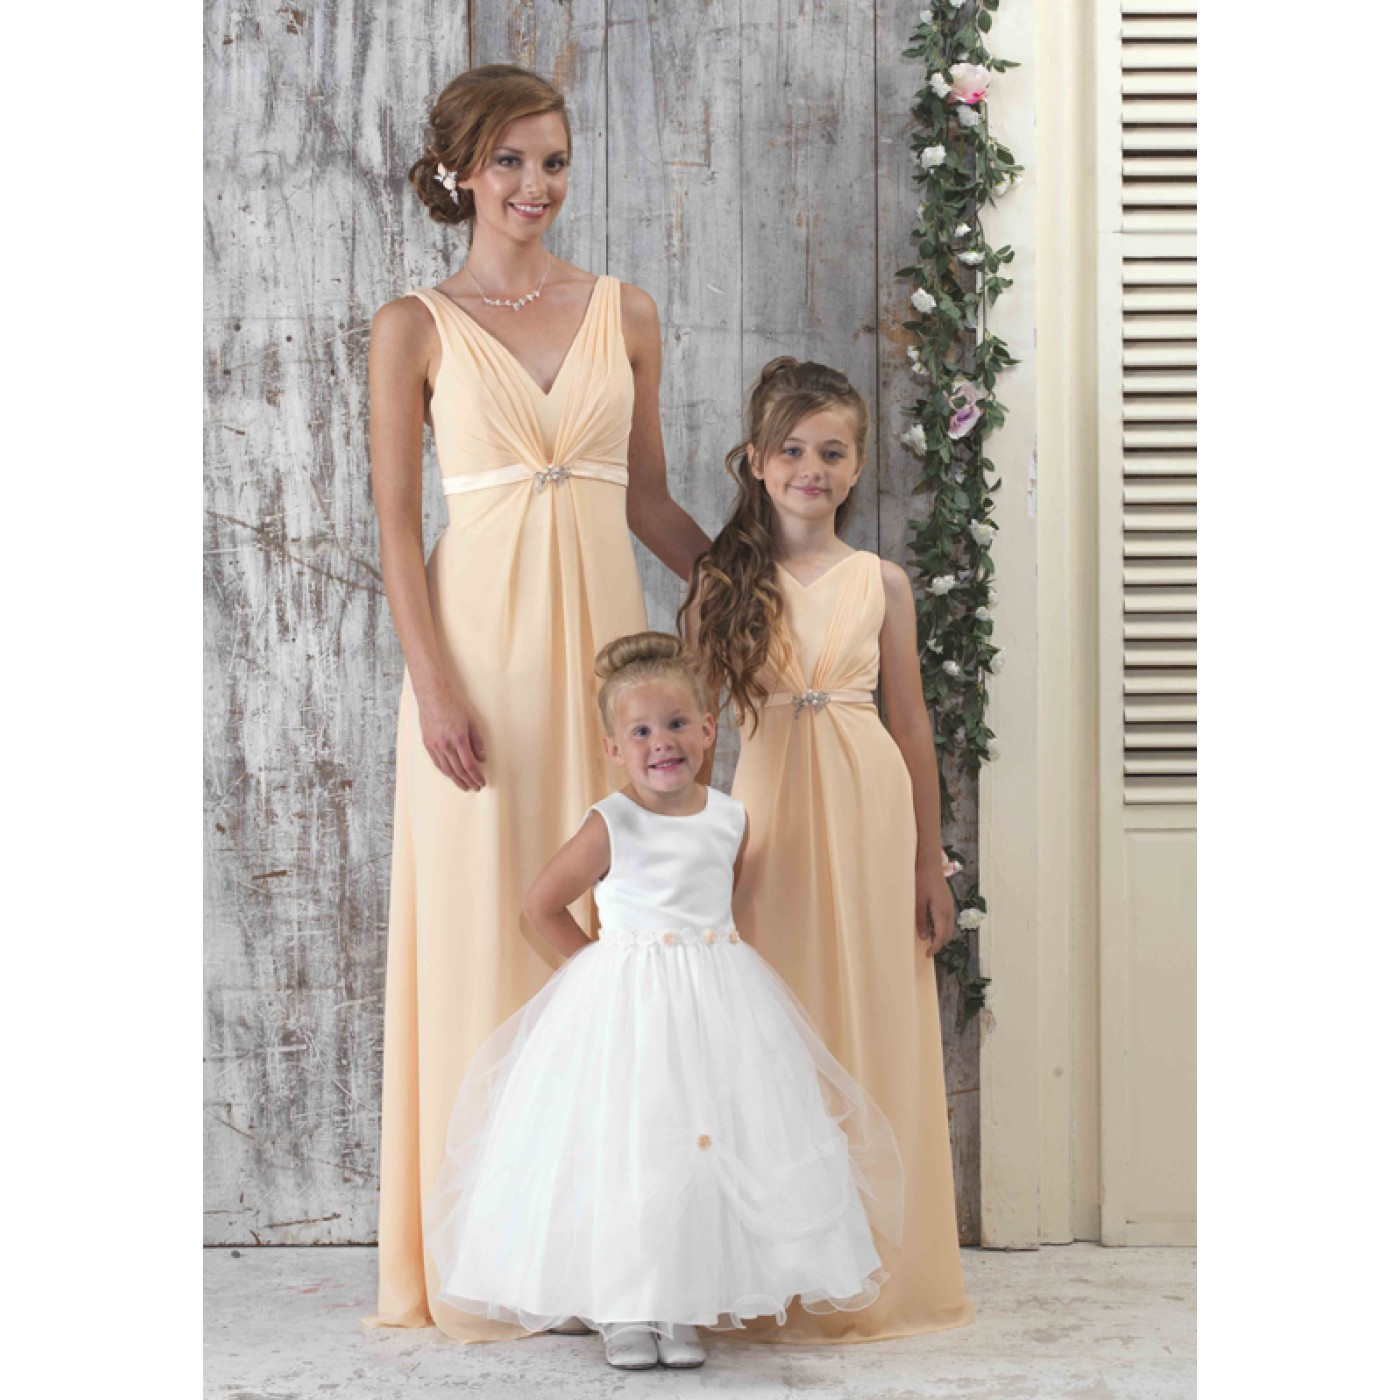 Linzi jay en339 bridesmaid dress the dressy dress shop linzi jay en339 bridesmaid dress ombrellifo Image collections